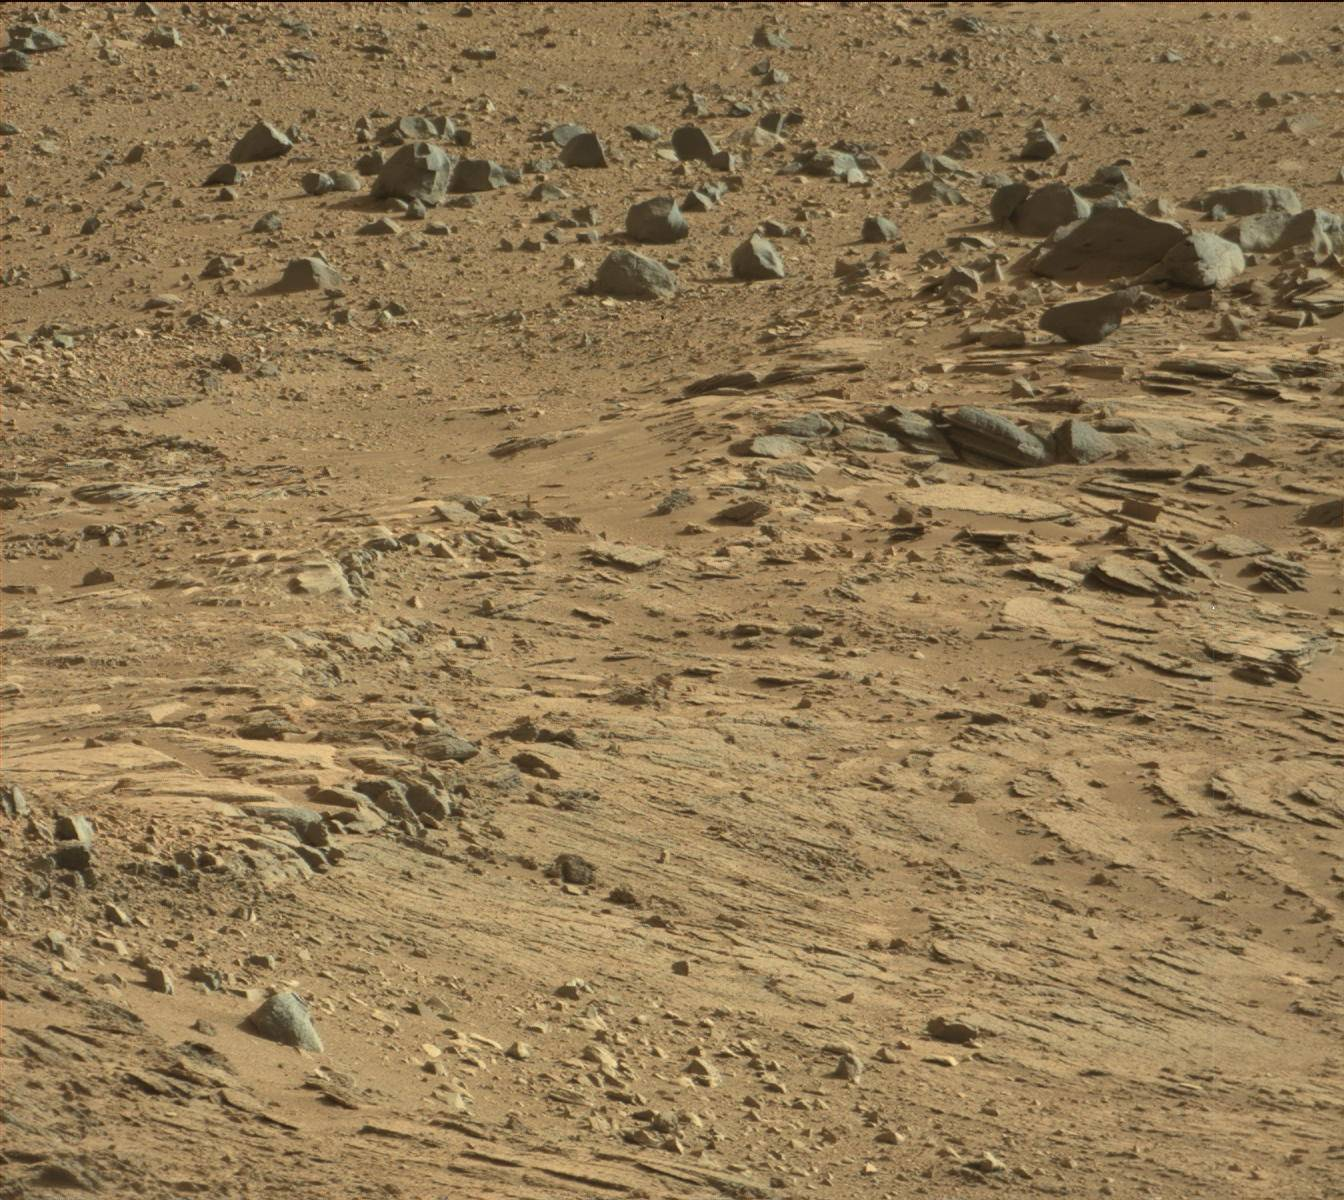 stones of discovery on mars nasa - photo #35